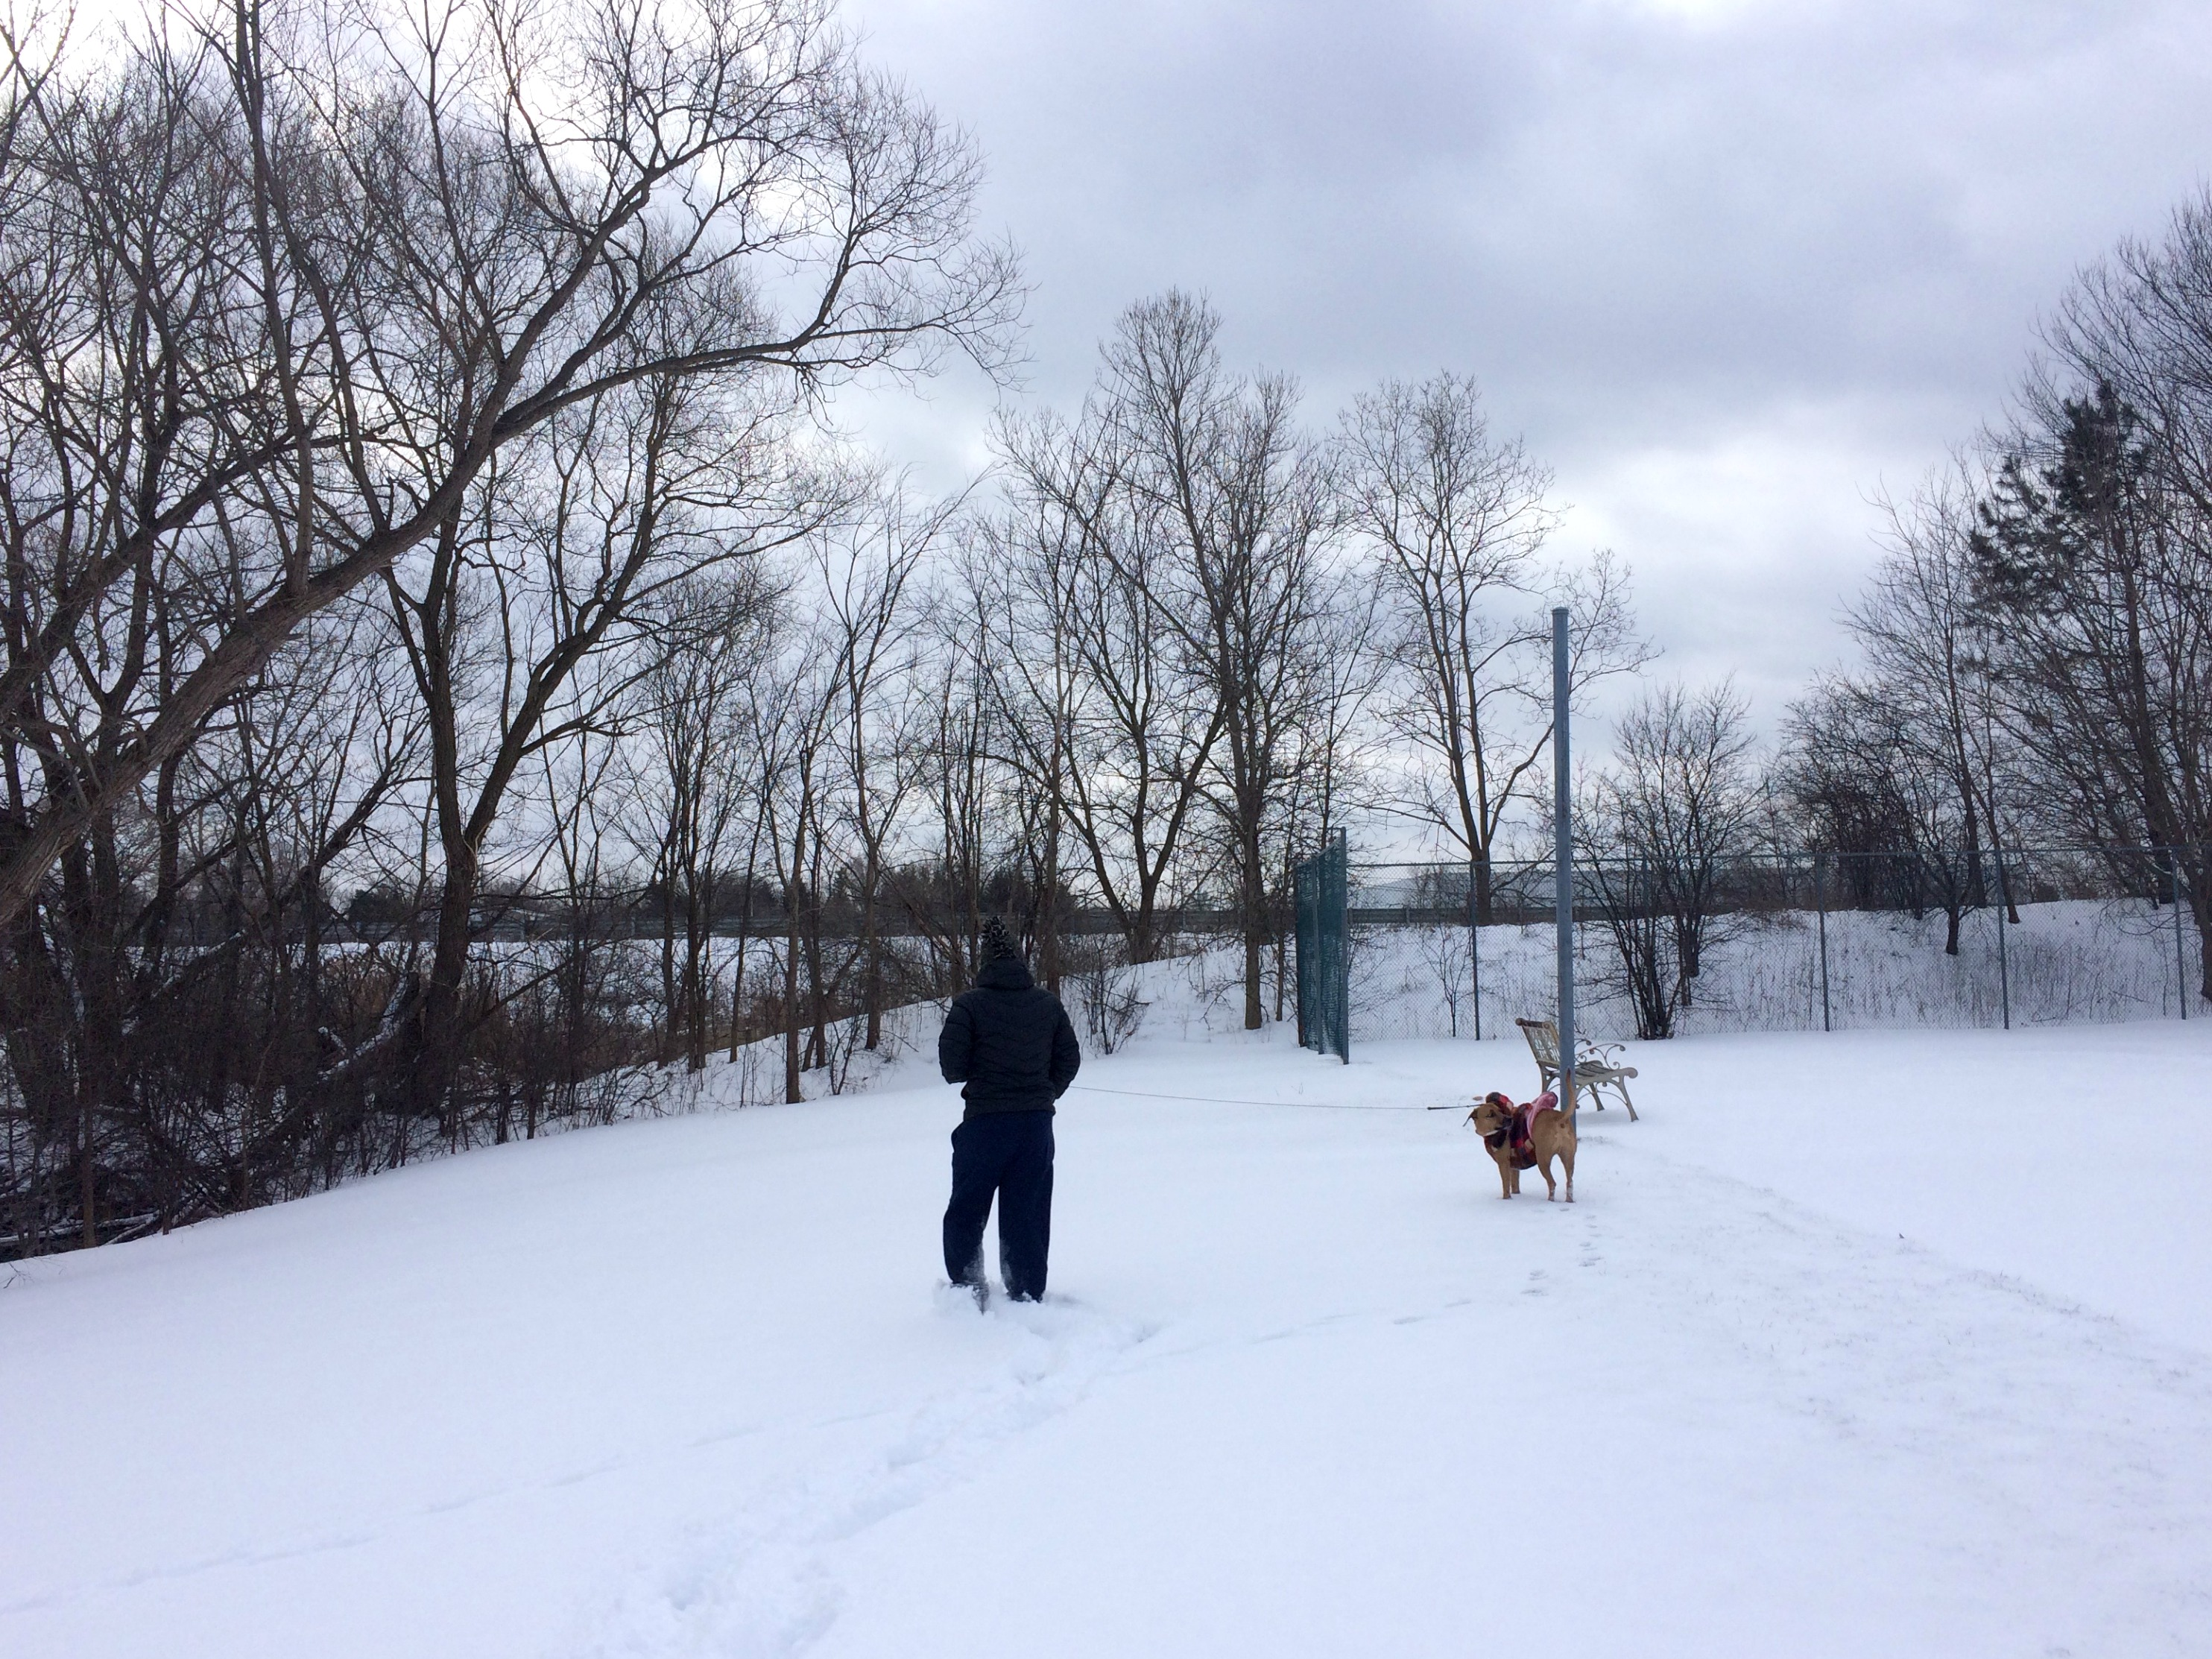 Scott and Roadie in the snow